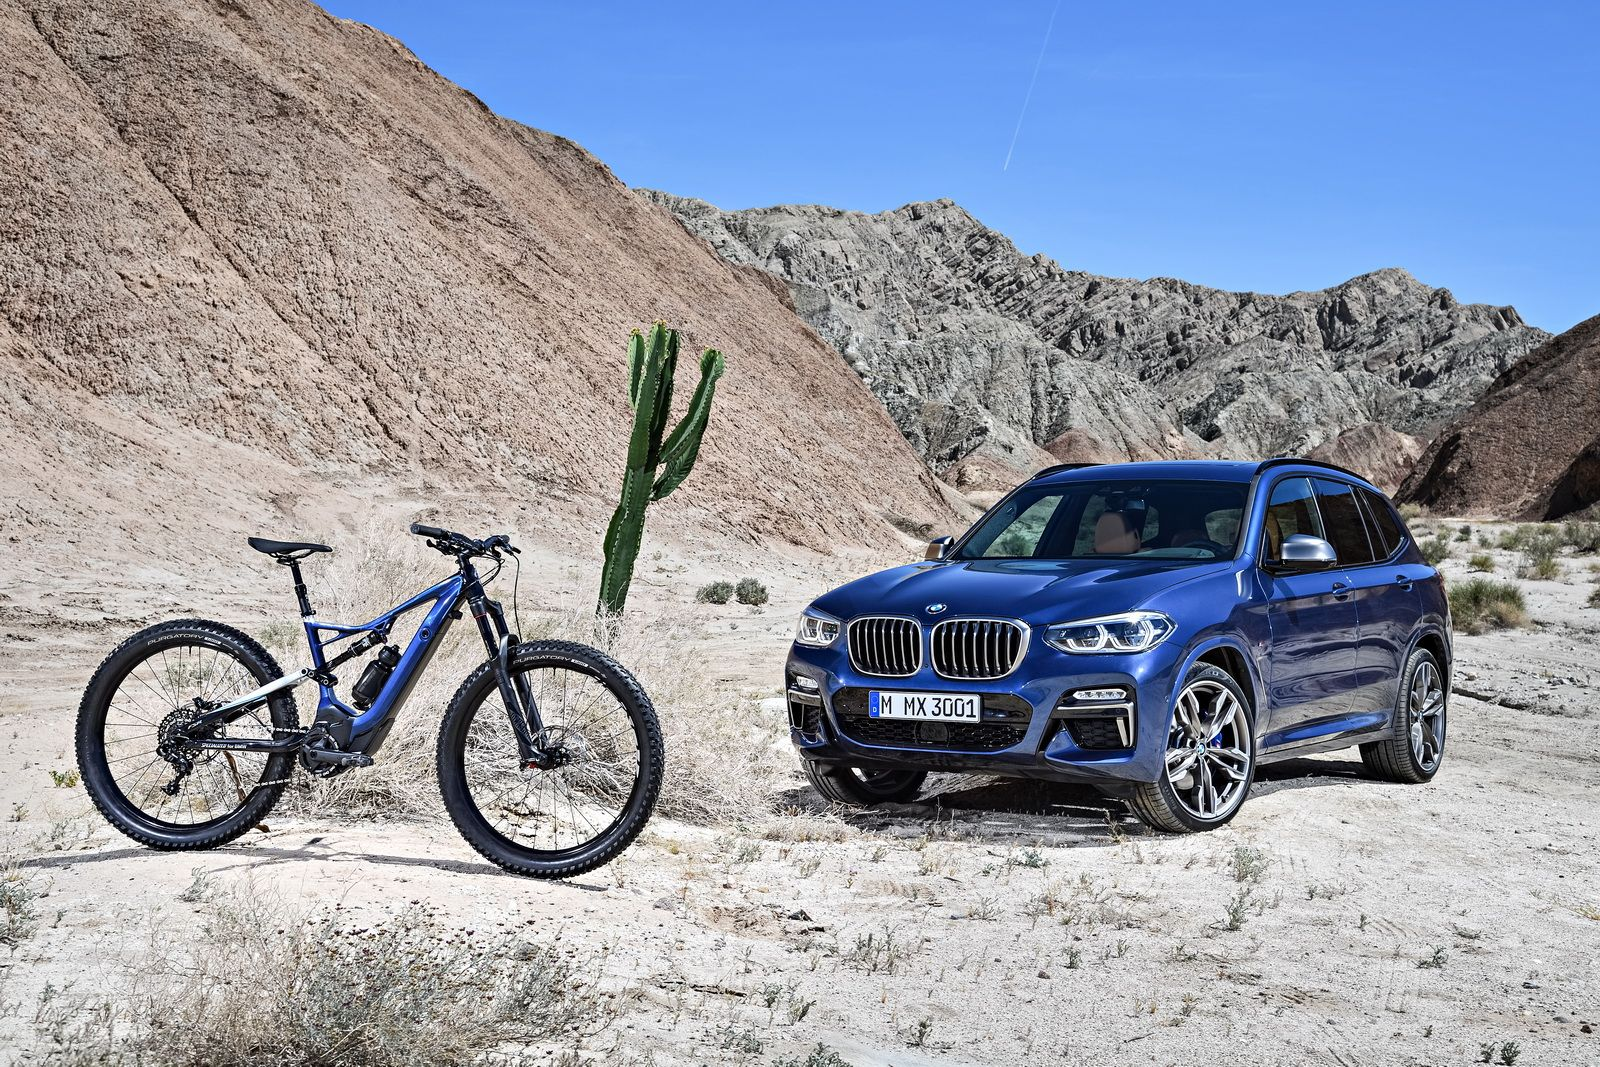 Pair your 2018 bmw x3 with this new matching e bike